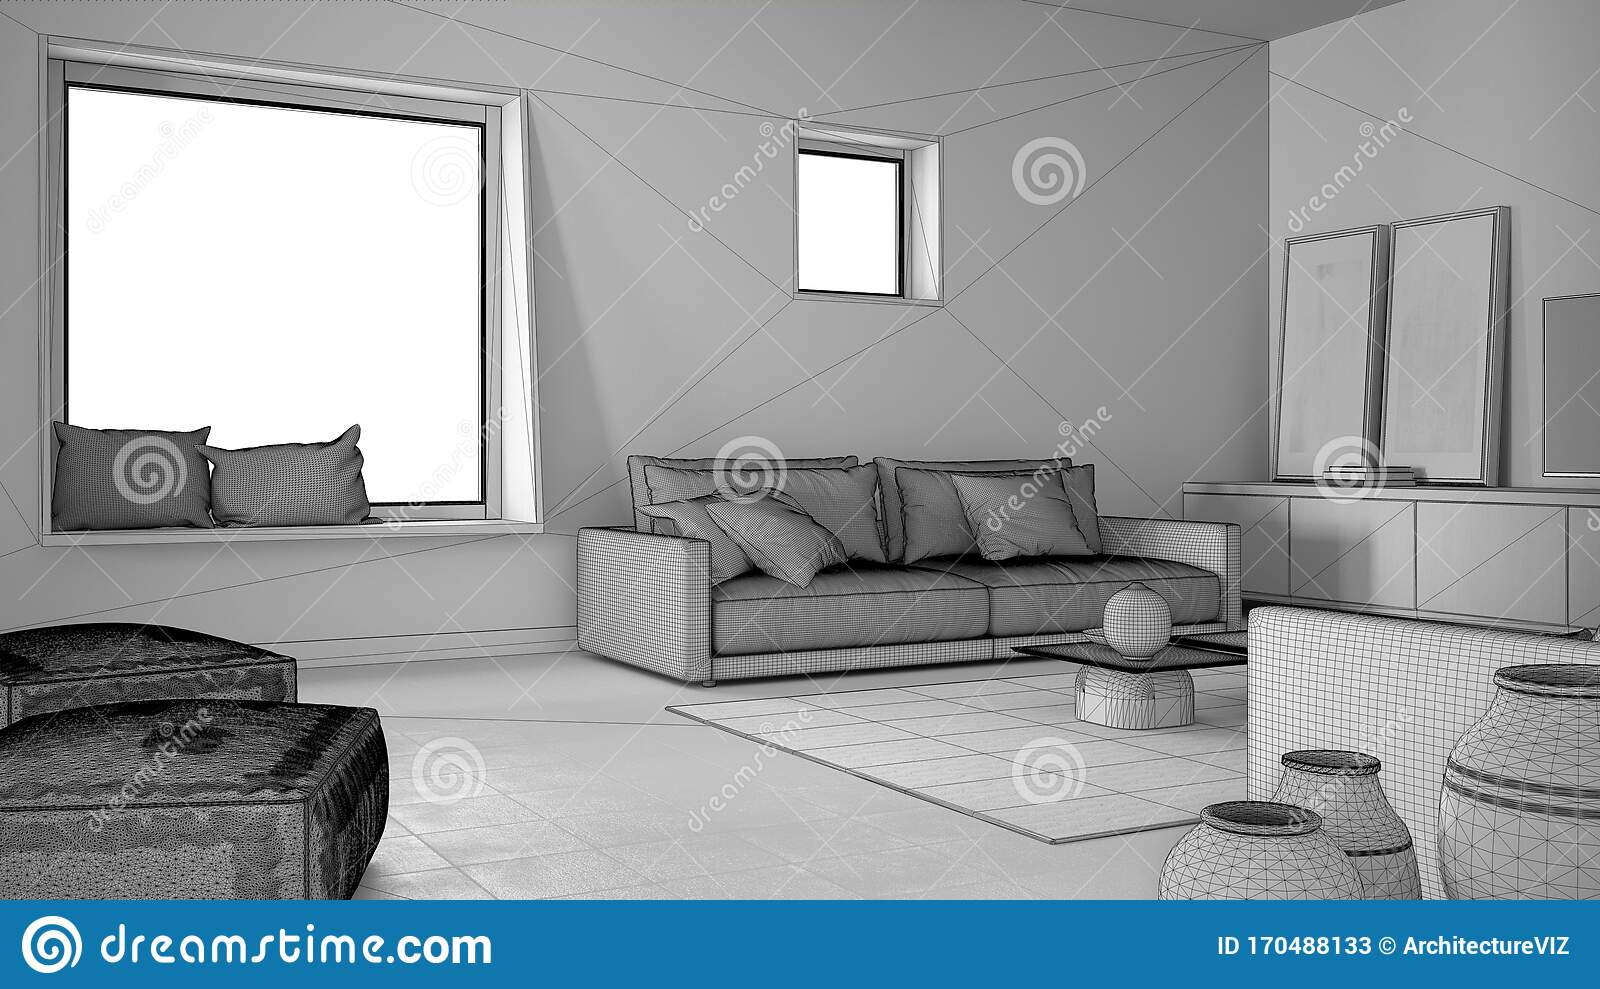 https www dreamstime com unfinished project draft cosy living room sofa pillows lounge carpet coffee table vases pouf decors big square window image170488133